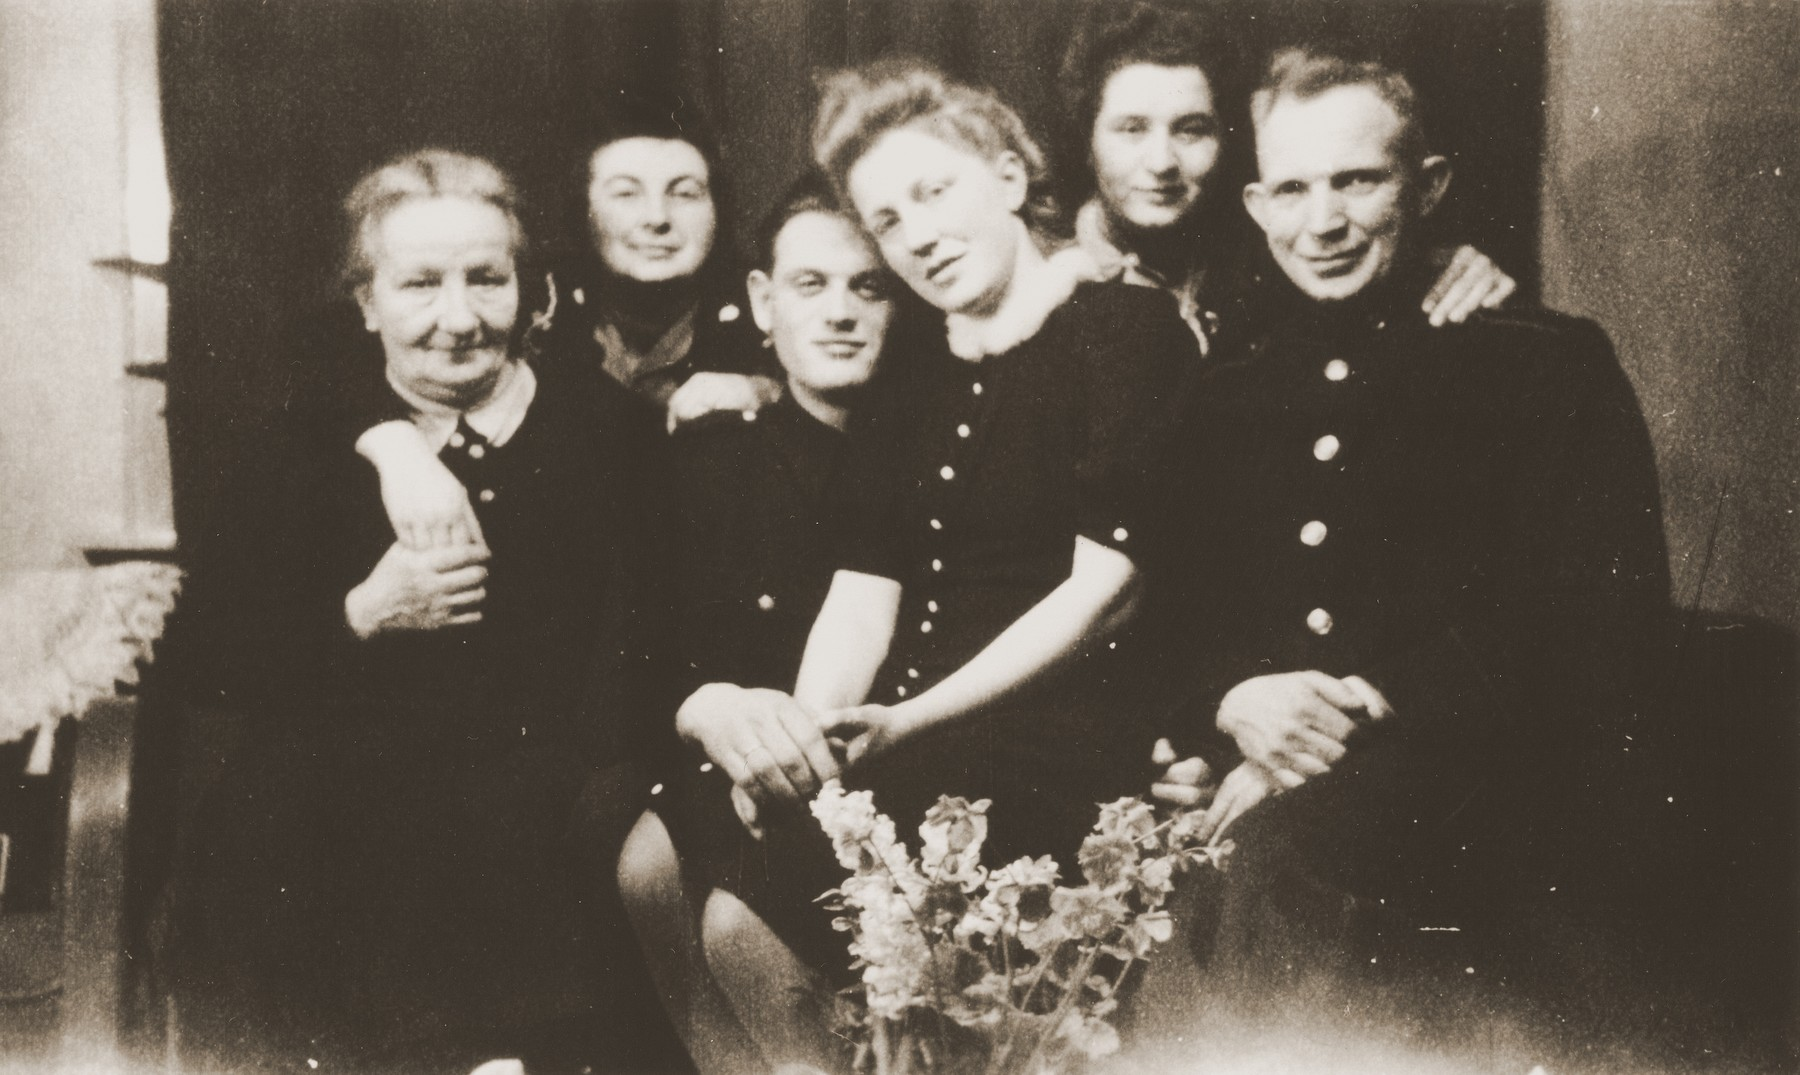 Two Jewish women, who were hidden by the Leuverink family during the war, pose with their rescuers on the occasion of the engagement of their children, Zus and Gerbrandt Leuverink.  Pictured with the Leuverinks are Renee (Sara) Meijer (second from the left) and Mien Zion (second from the right).